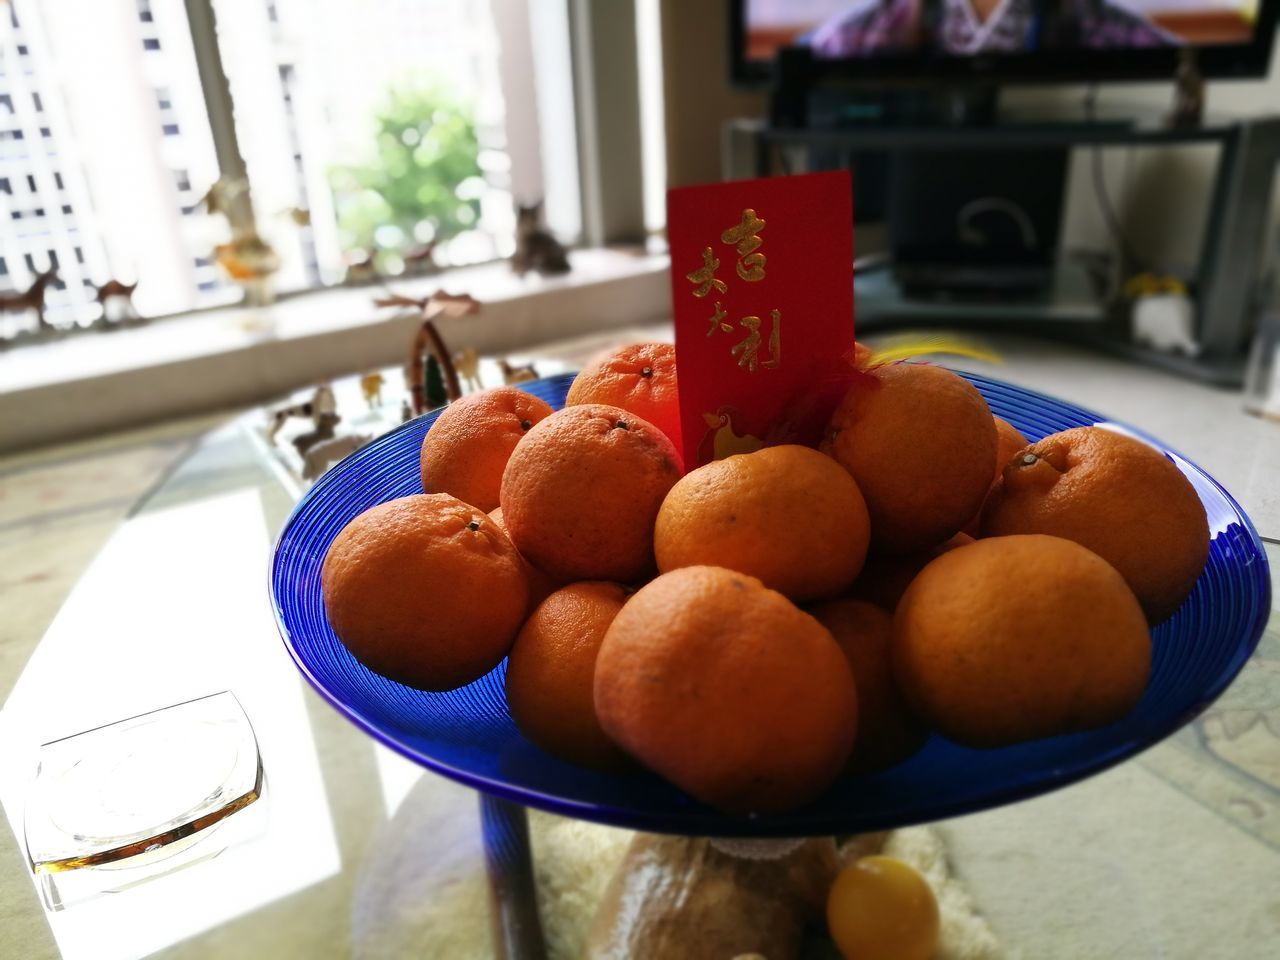 It is home Fruit Freshness Healthy Eating Food And Drink Food No People Indoors  Ready-to-eat Close-up Oranges Chinese New Year Lunar New Year Fruit Bowl Living Room Mandarin Oranges Mandarins Tangerines Red Packet Decoration Chinese Symbol Auspicious Fruit Prosperity Auspiciousness